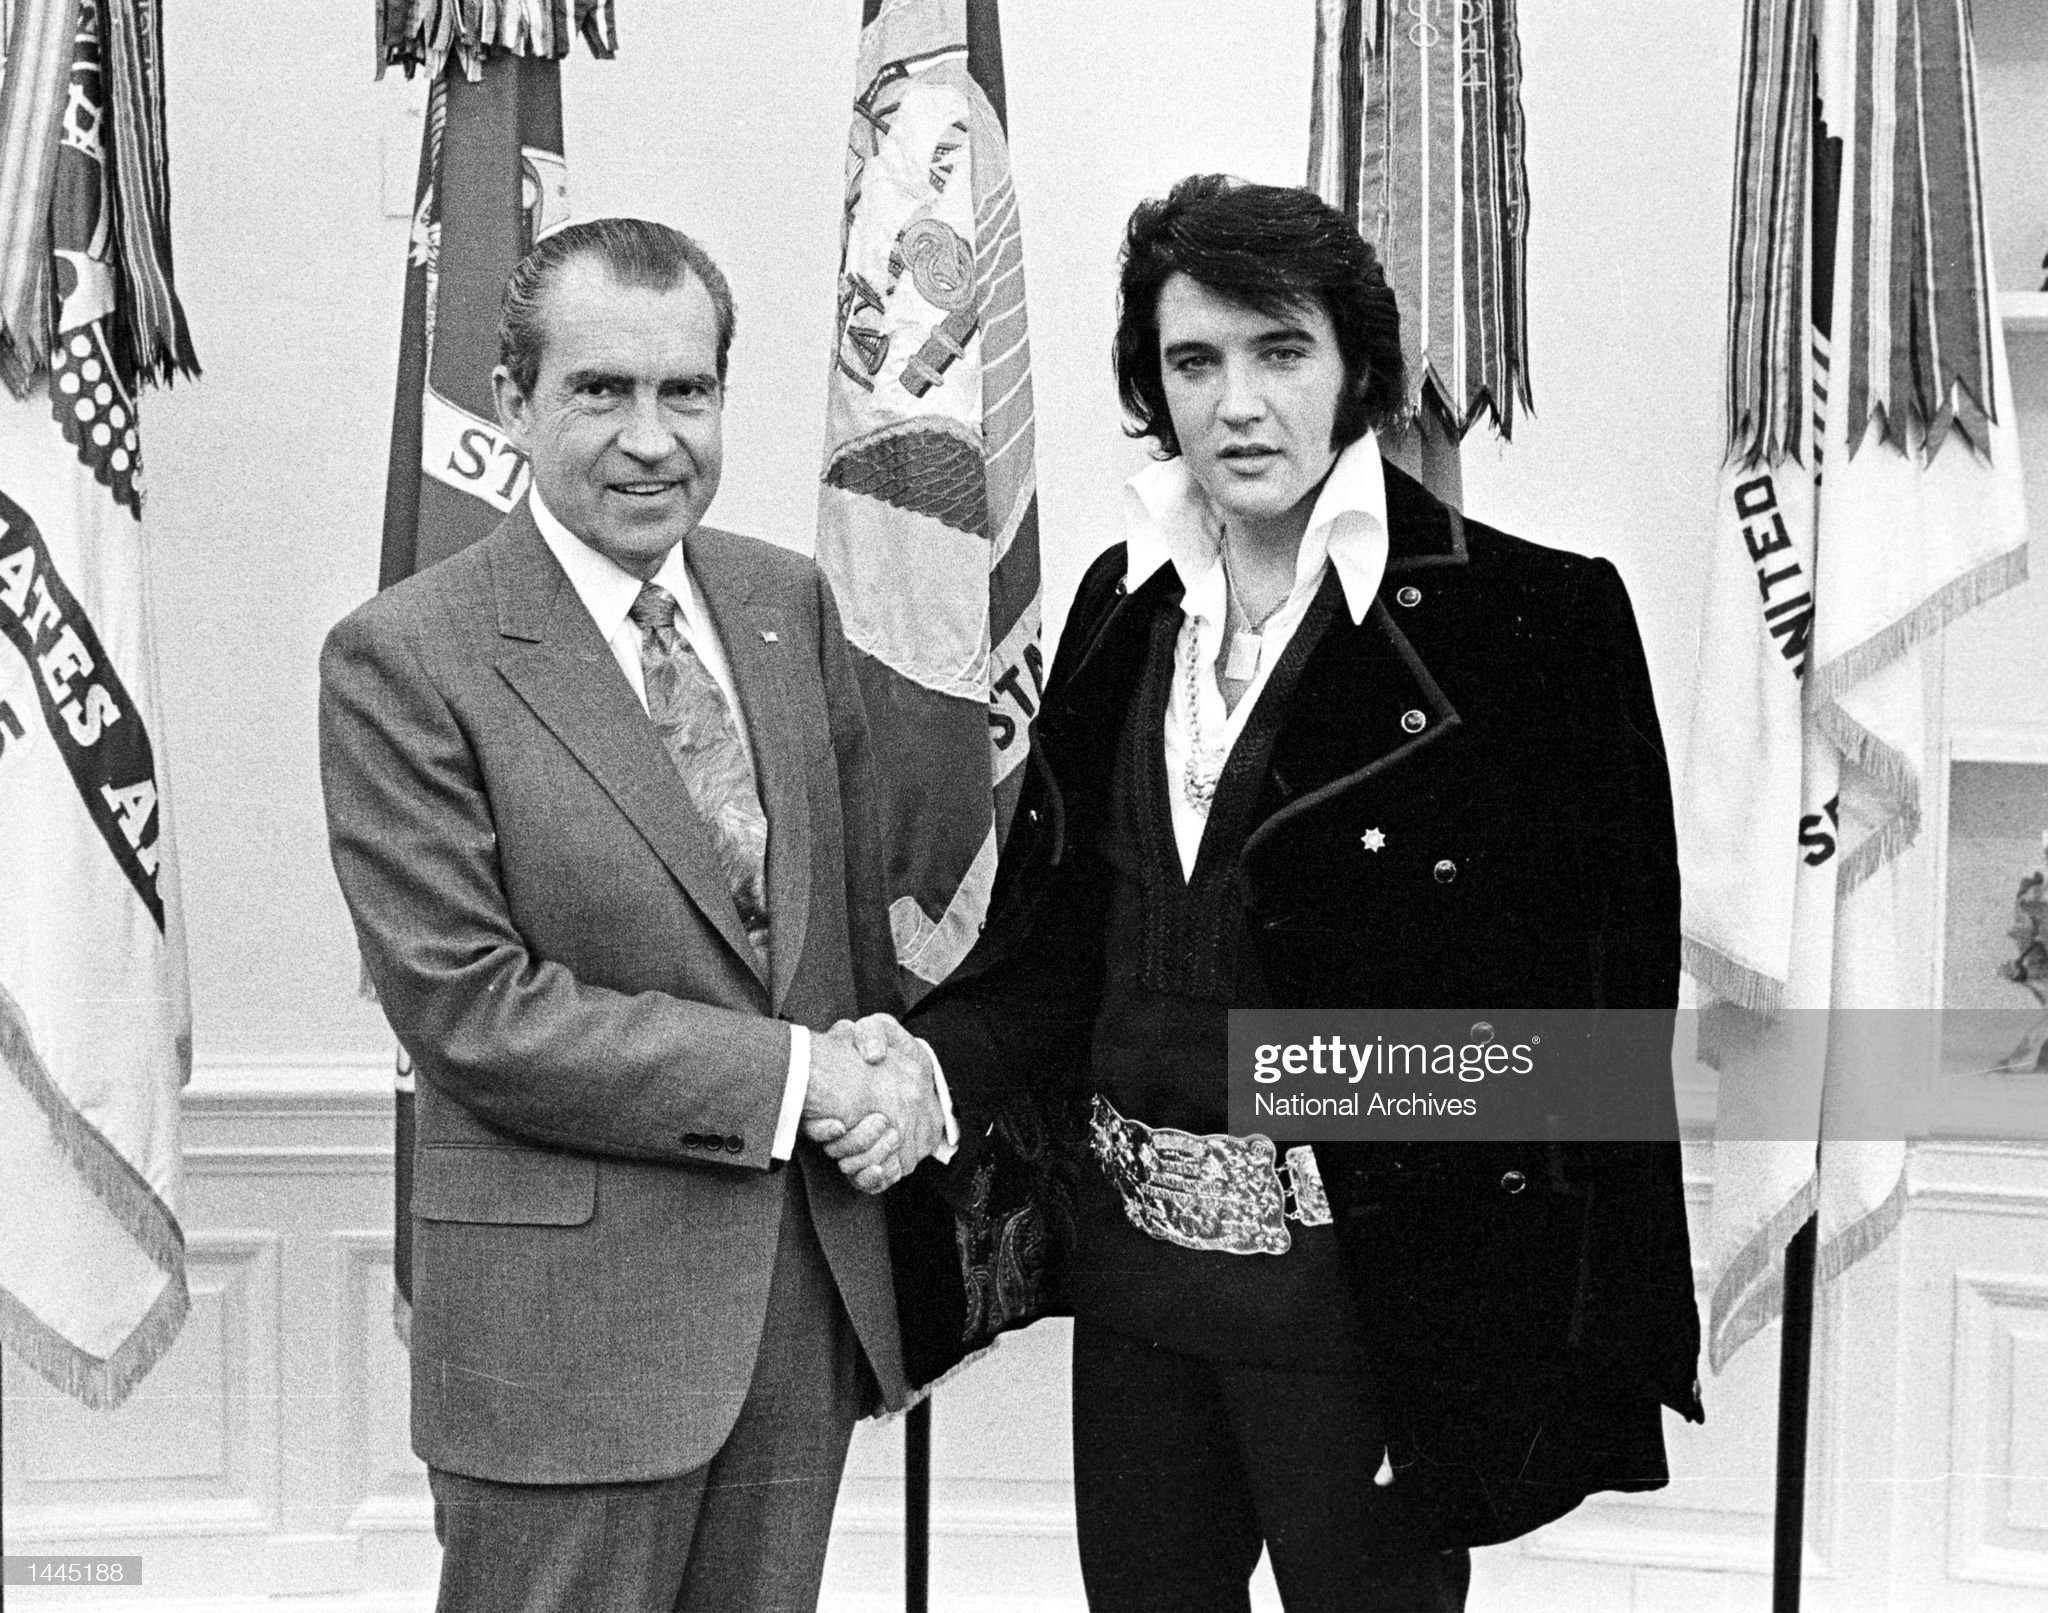 ¿Cuánto mide Richard Nixon? - Altura - Real height President-richard-nixon-meets-with-elvis-presley-december-21-1970-at-picture-id1445188?s=2048x2048